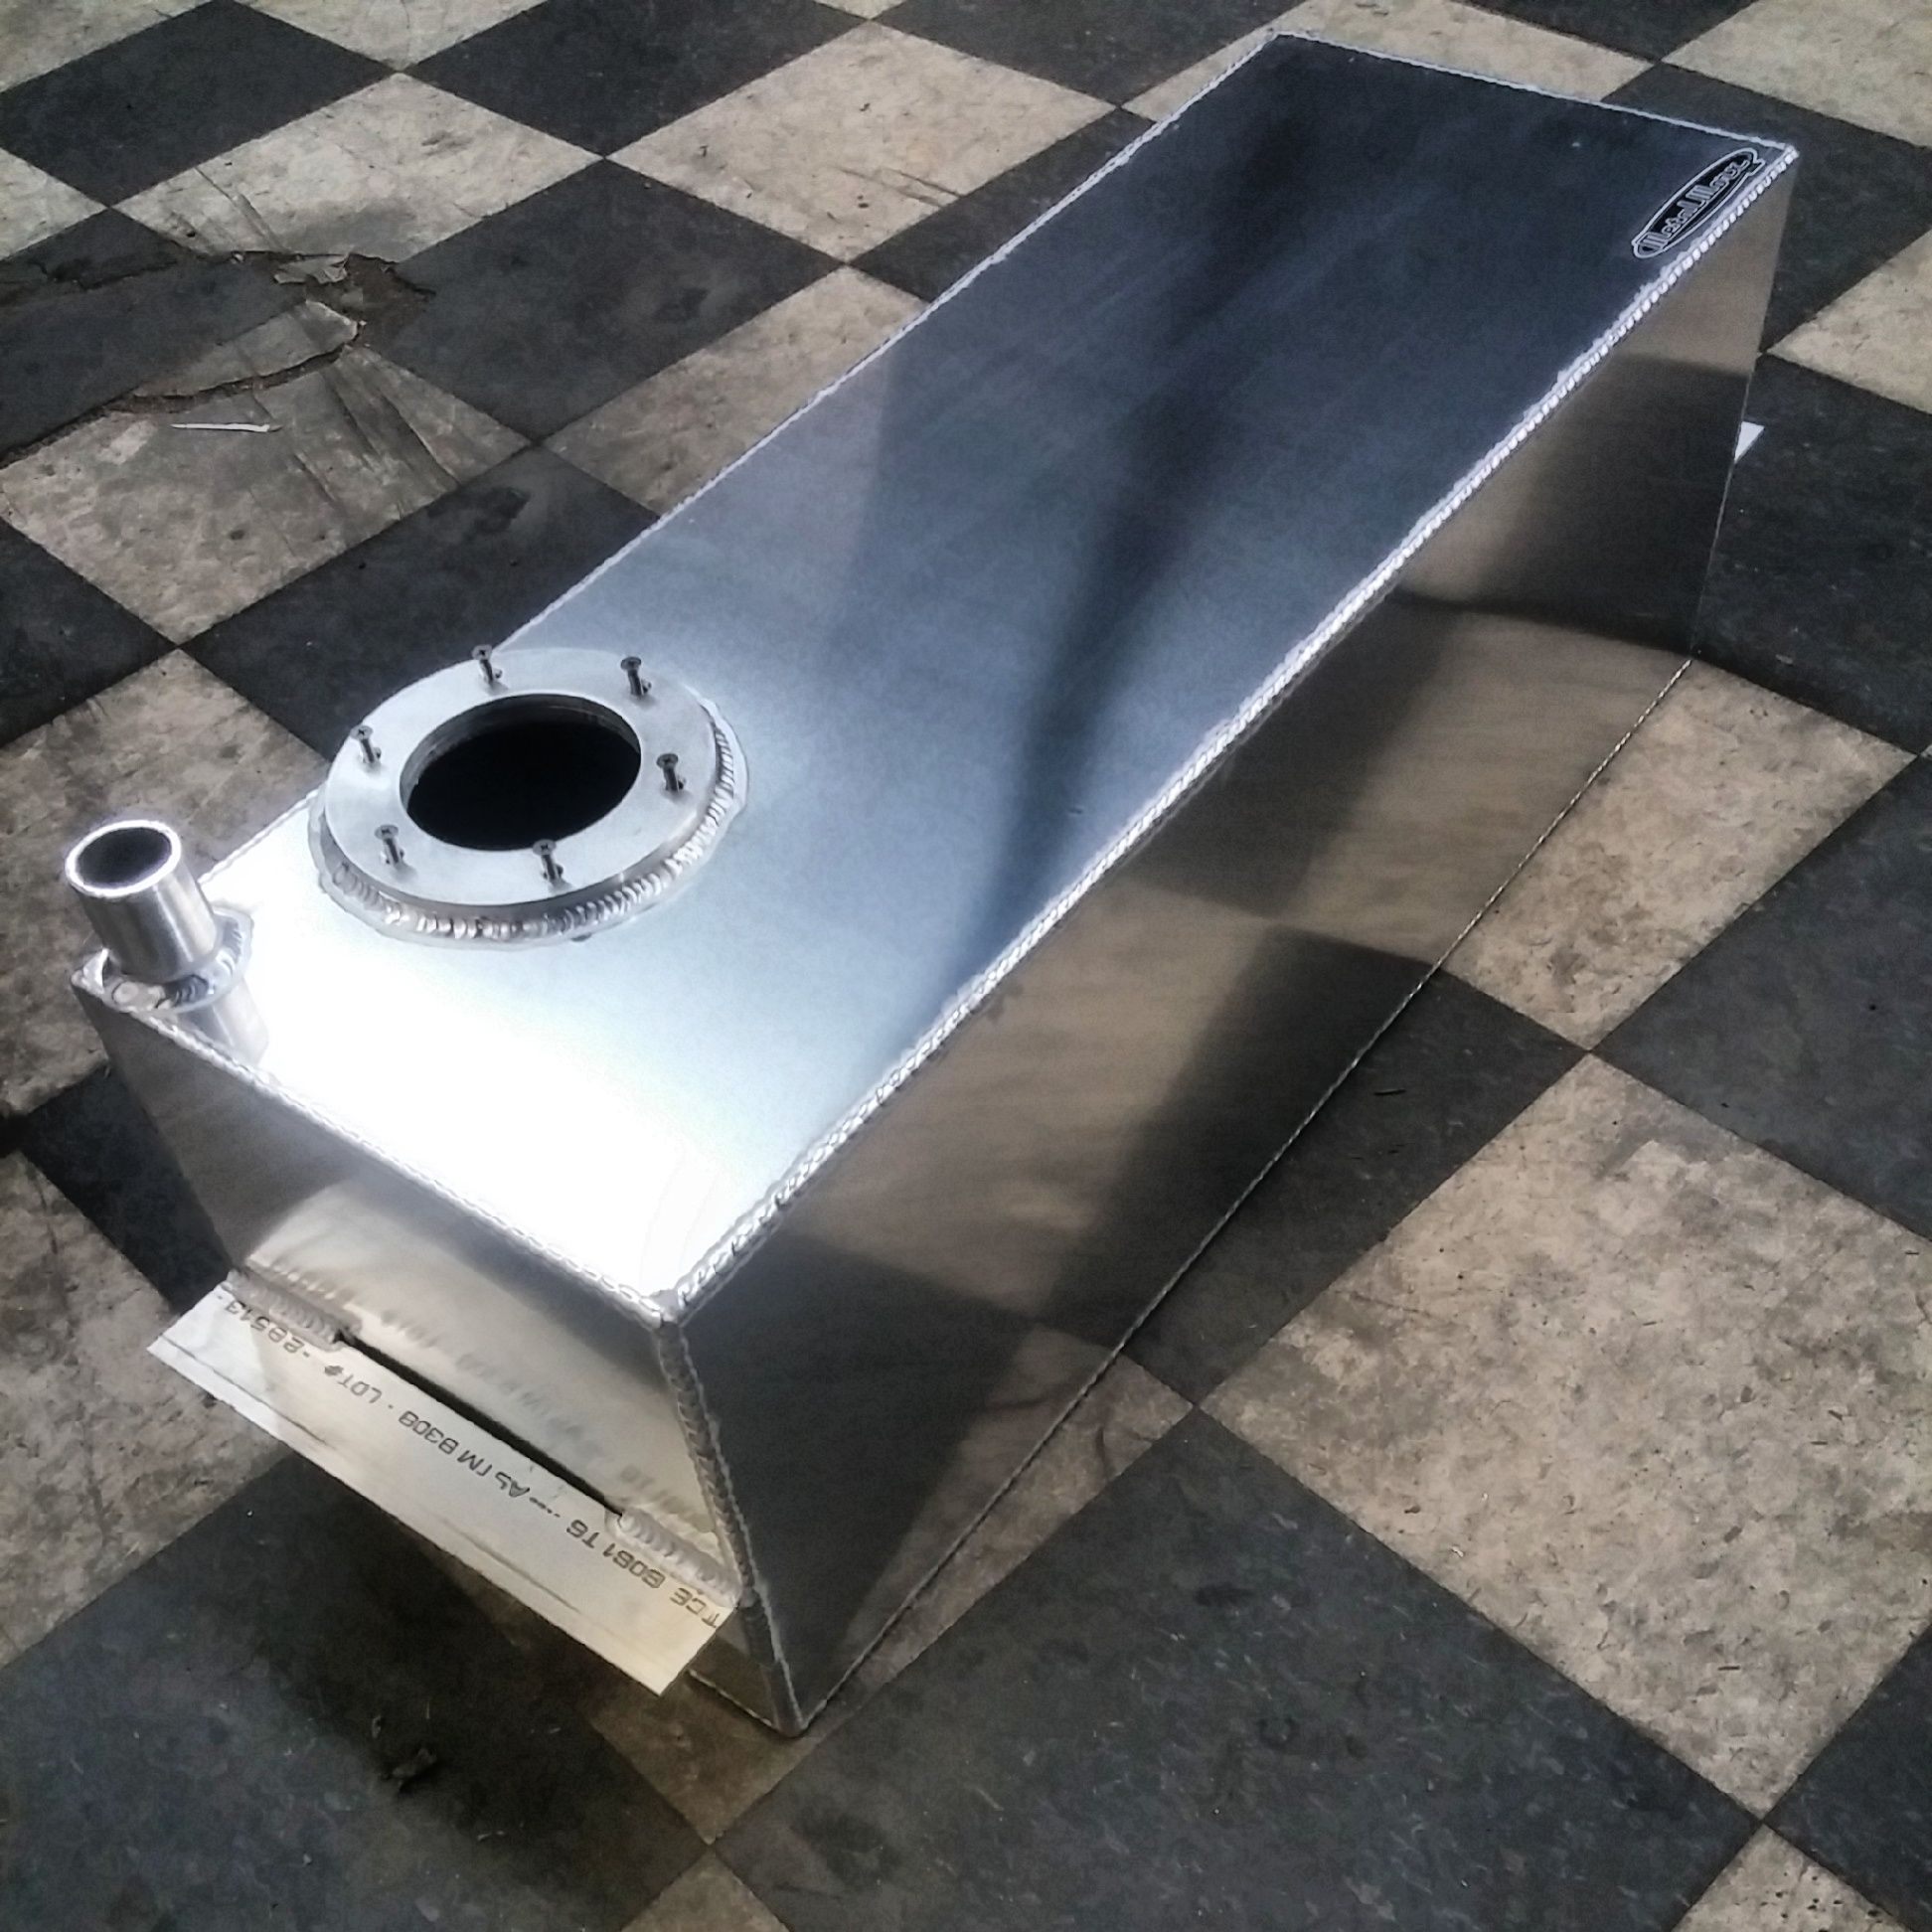 medium resolution of a 34x12x12 aluminum fuel cell for a chevrolet s10 with a 2 filler neck and stock fuel pump adapter rings